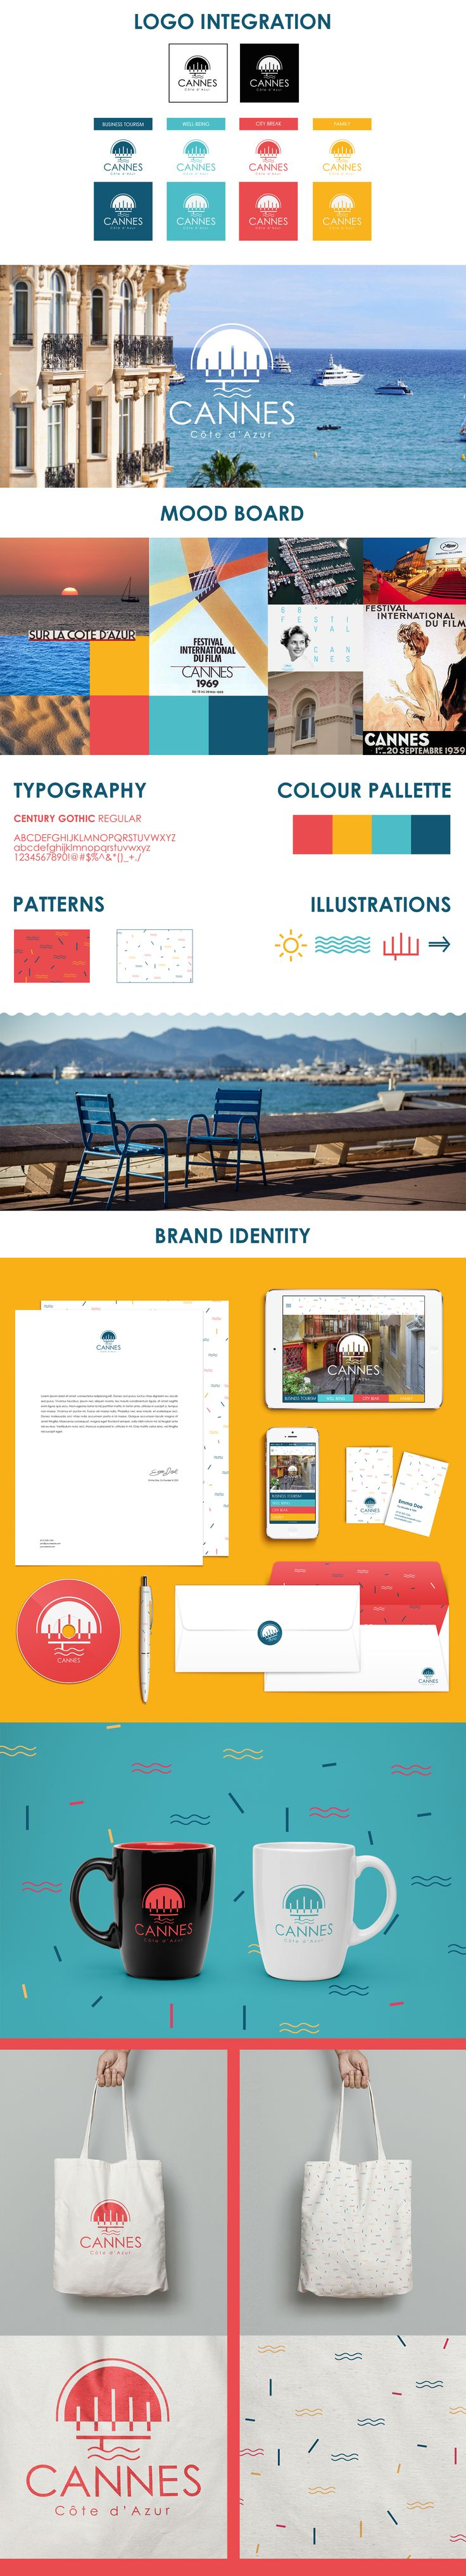 CANNES LIONS 2015 // Design // City Branding for Cannes on Behance